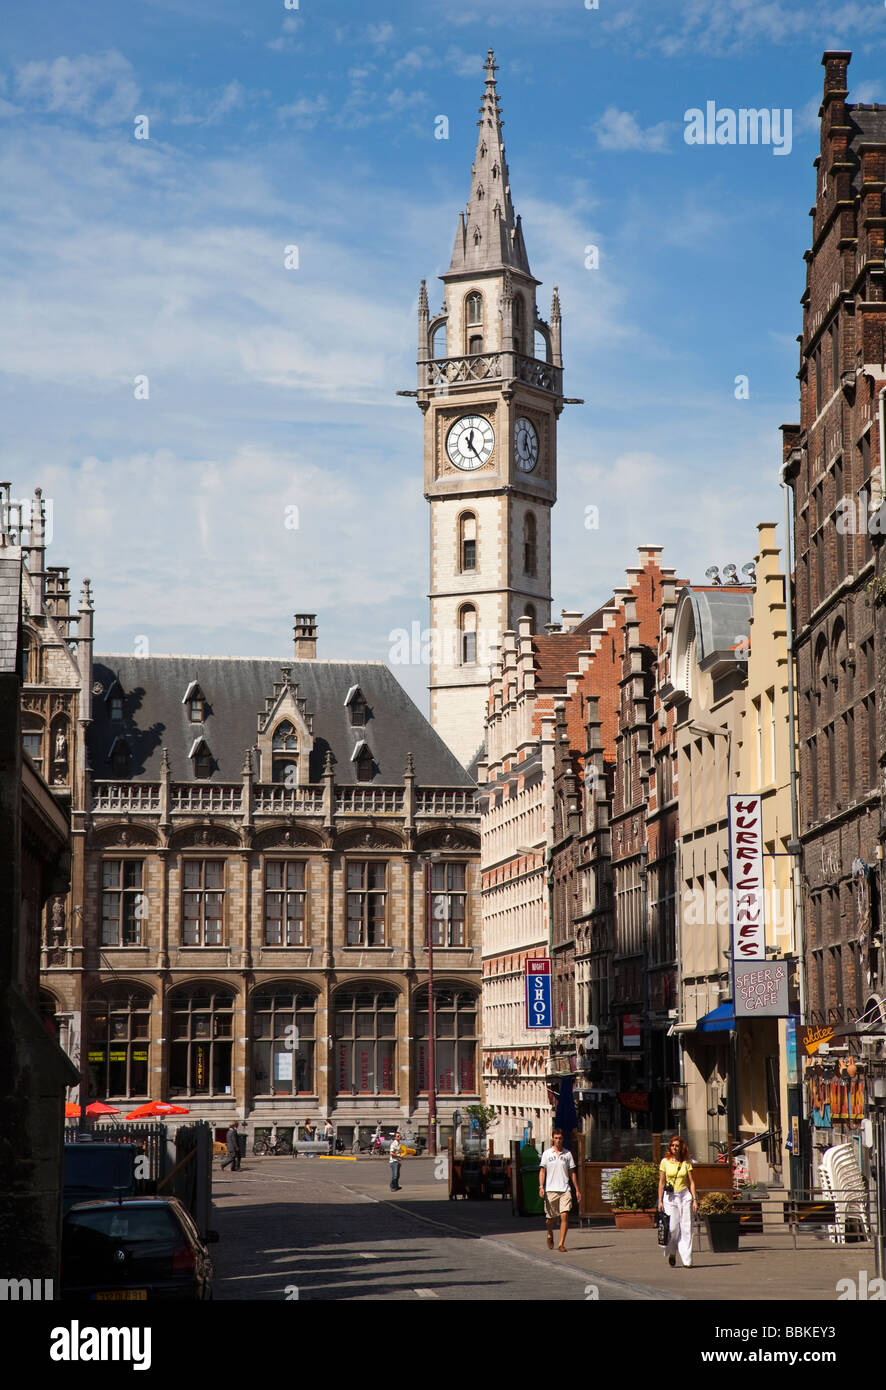 Street with shops and old buildings Ghent Belgium - Stock Image